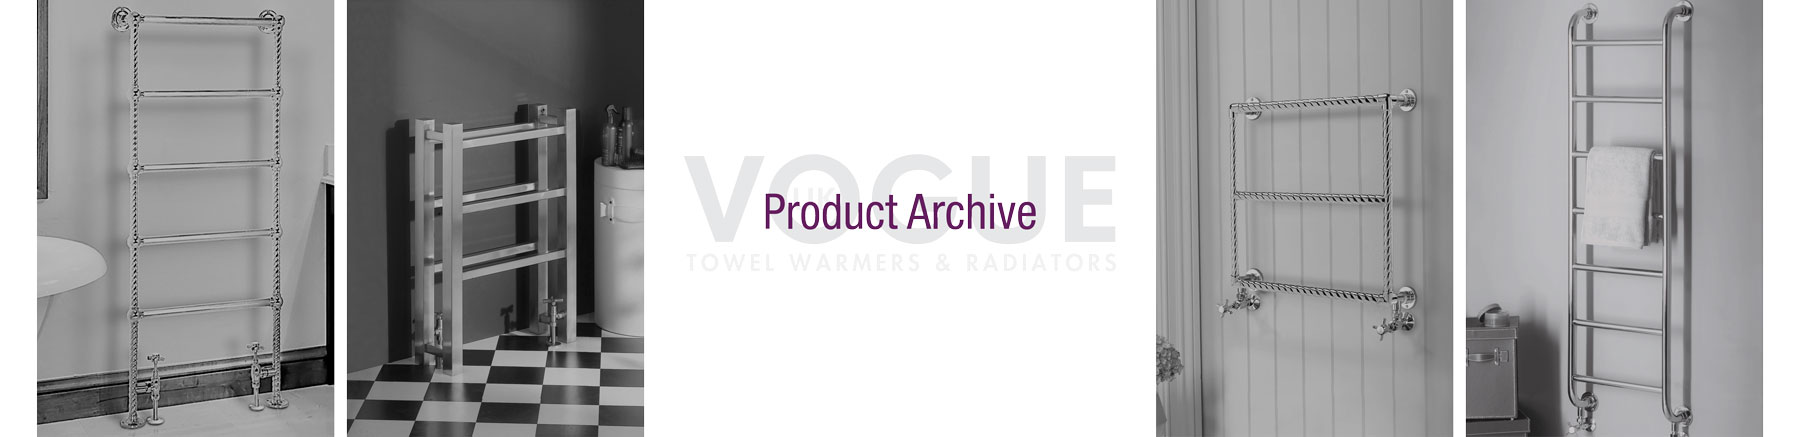 product archive product header